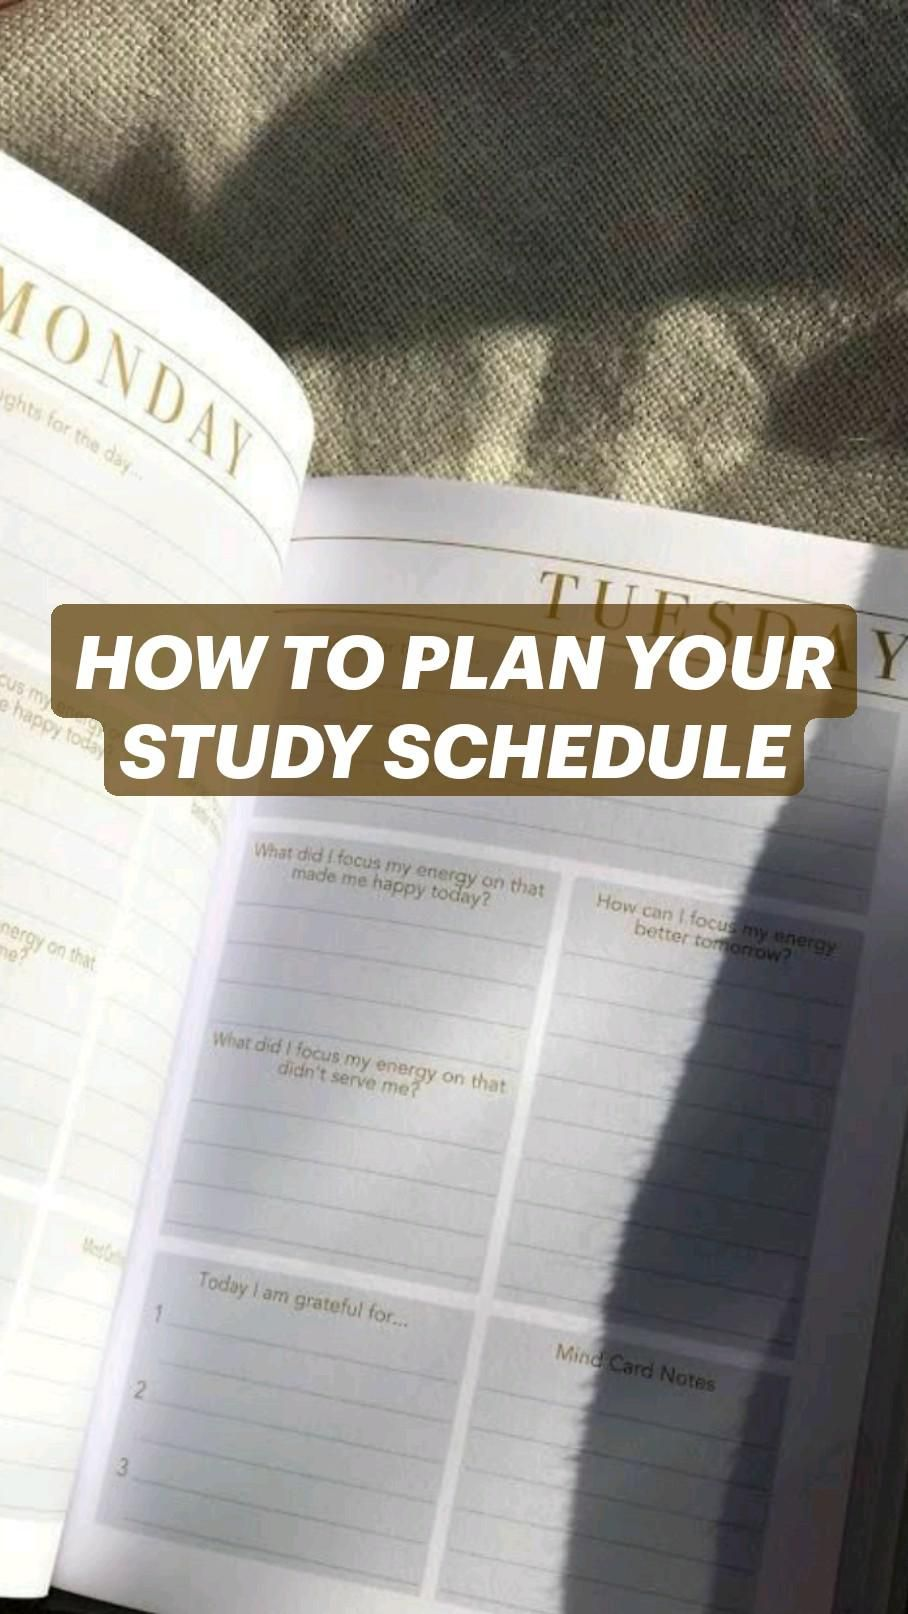 HOW TO PLAN YOUR STUDY SCHEDULE